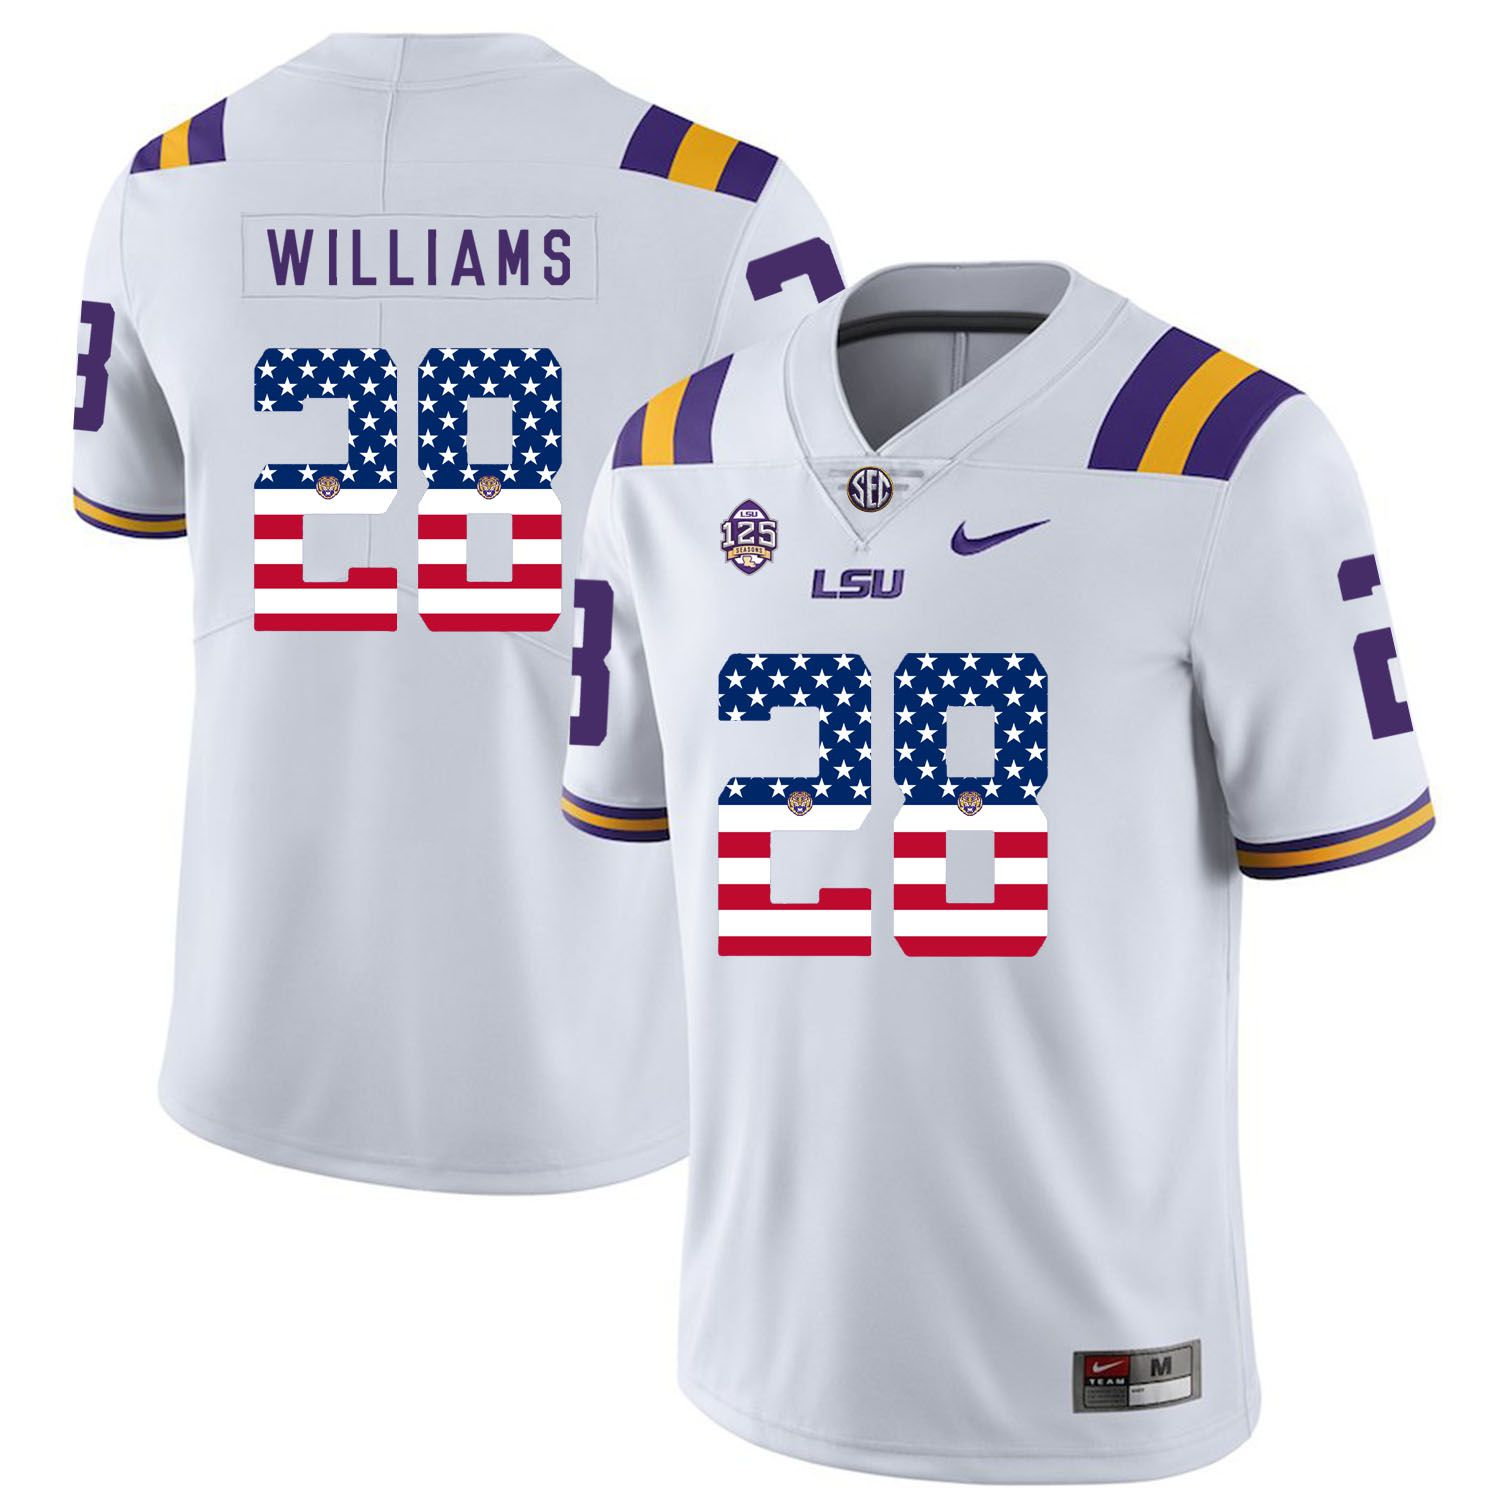 Men LSU Tigers 28 Williams White Flag Customized NCAA Jerseys